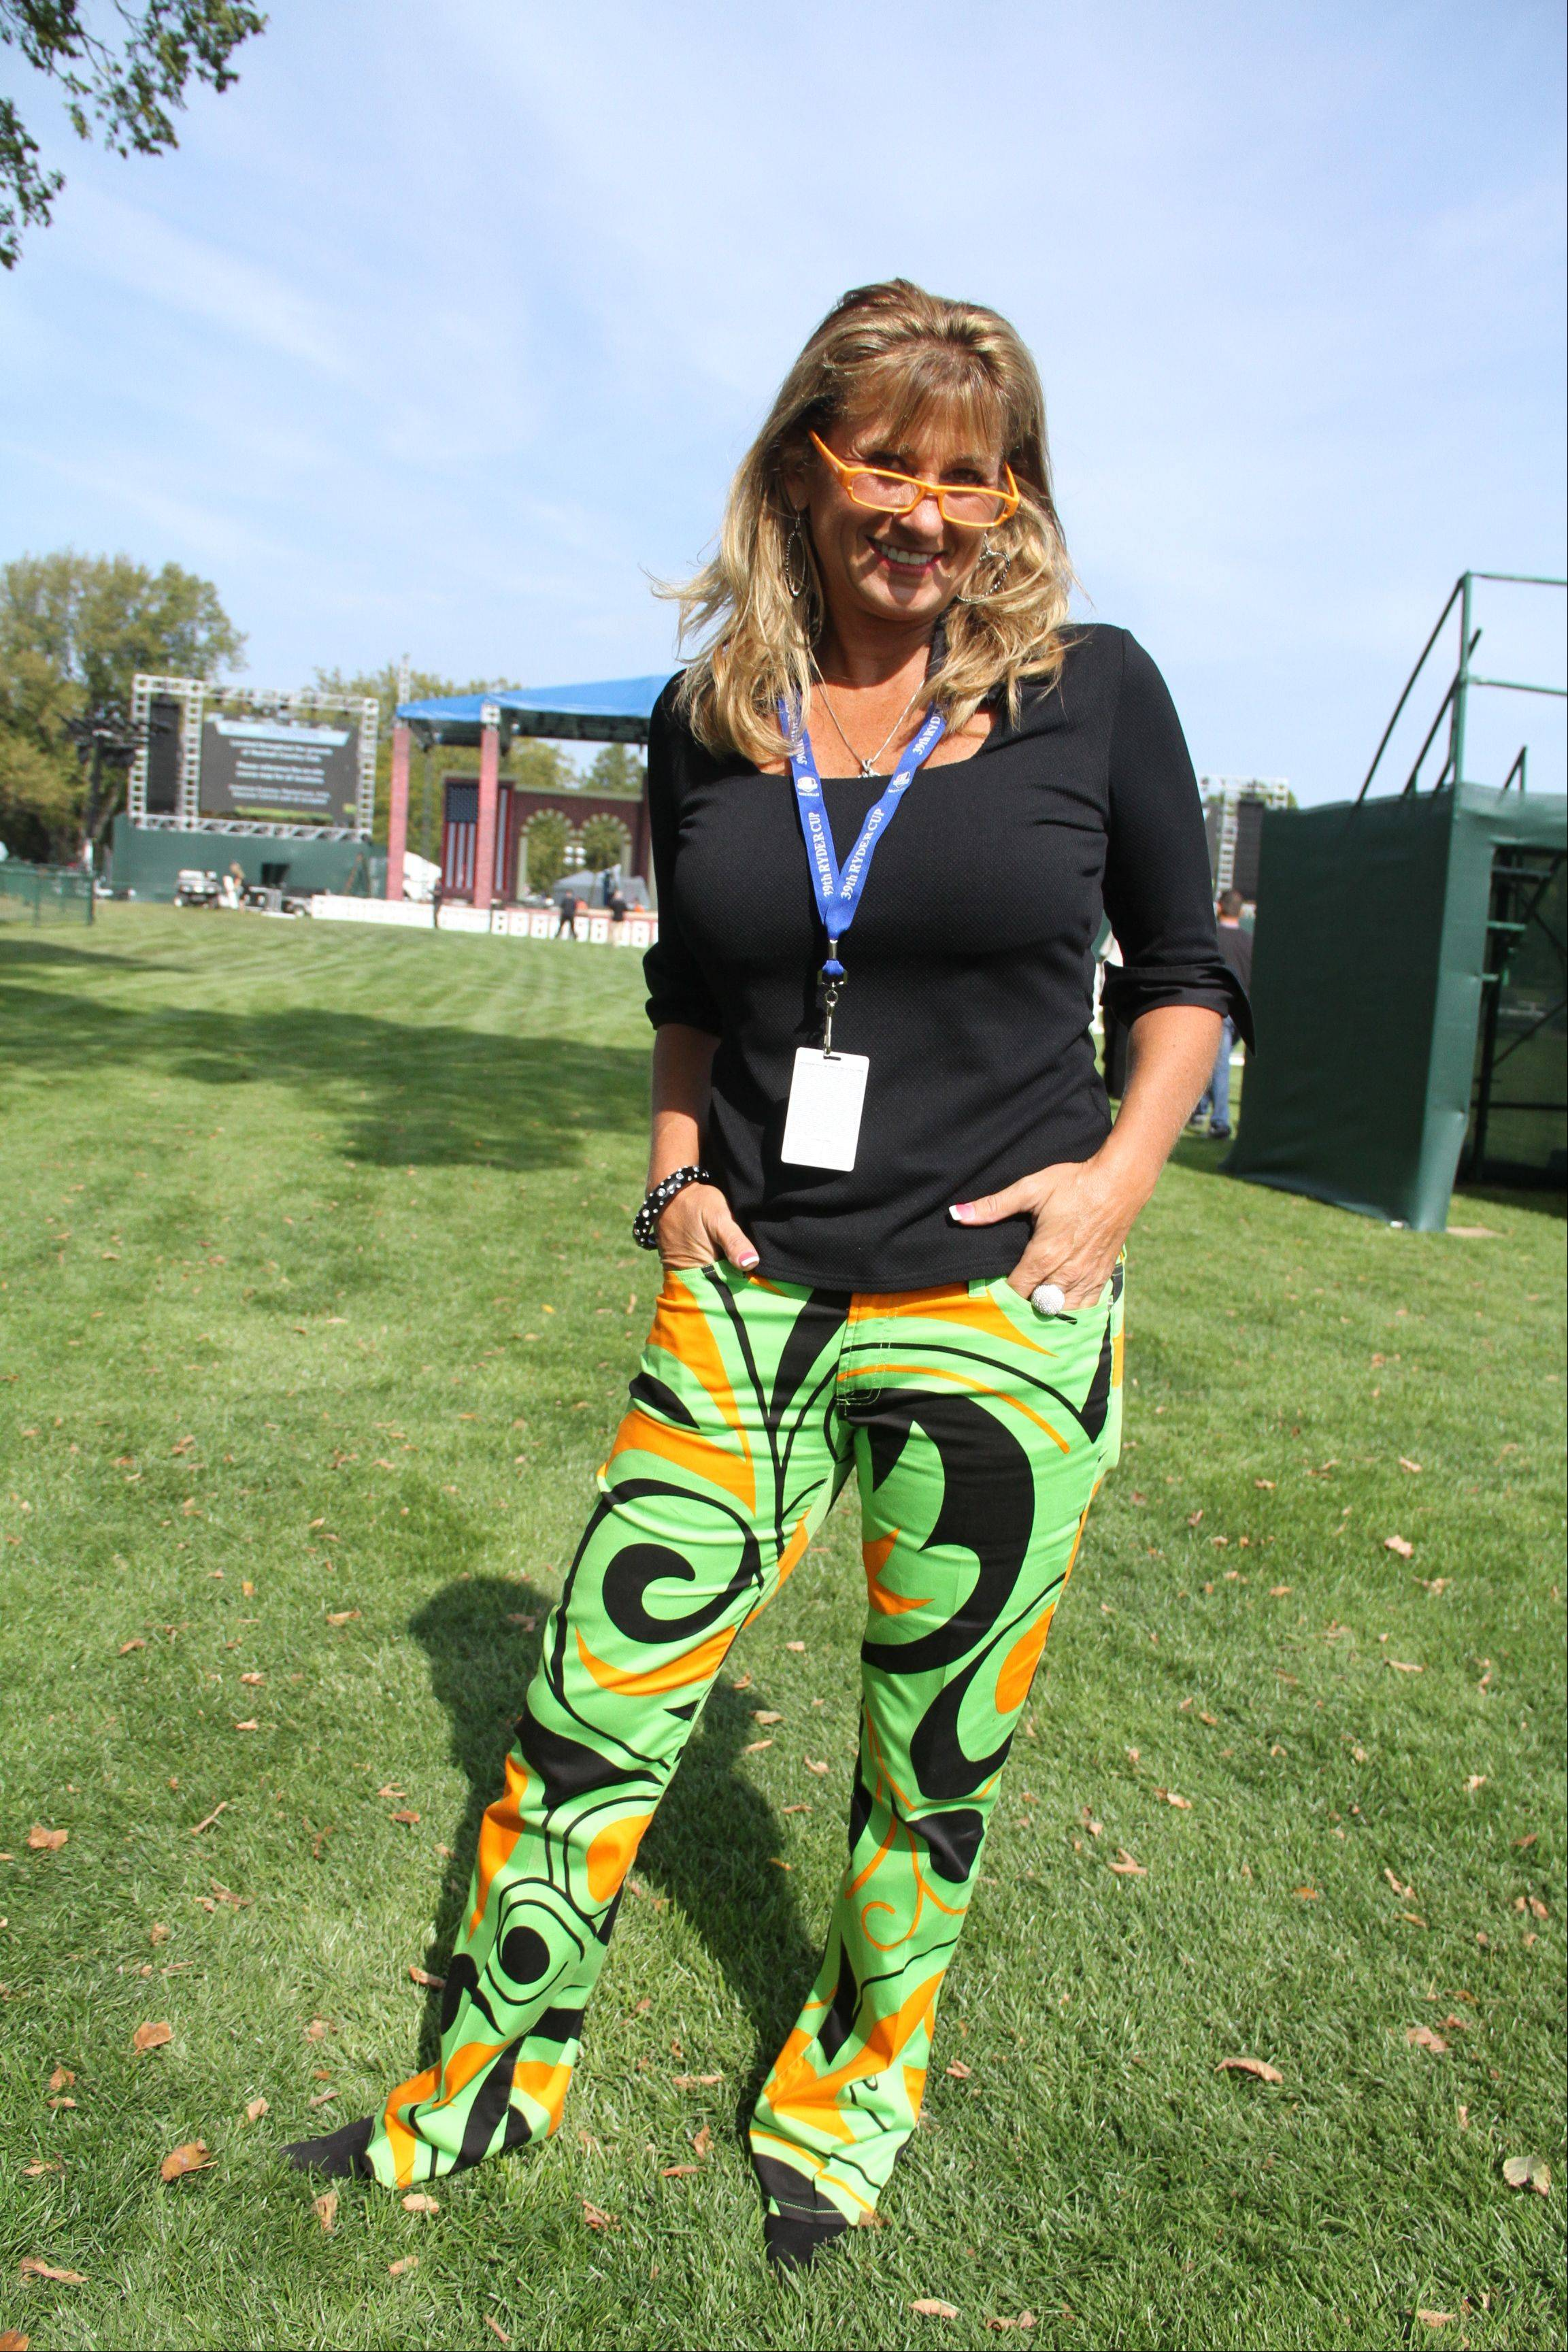 "Wendy Pellegrino, of Downers Grove, anchor of Comcast's Golf Chicago TV, sported colorful Loudmouth brand pants, similar to those worn by actor Bill Murray Tuesday. Pellegrino, who also wore orange-framed eyeglasses, said she owns six pairs of the bright patterned pants and plans to wear a different one every day of the Ryder Cup. ""You have no idea how much I've been stopped. People want their picture taken with me,"" she said. ""They'll say, 'Oh my God, you look awesome!'"""